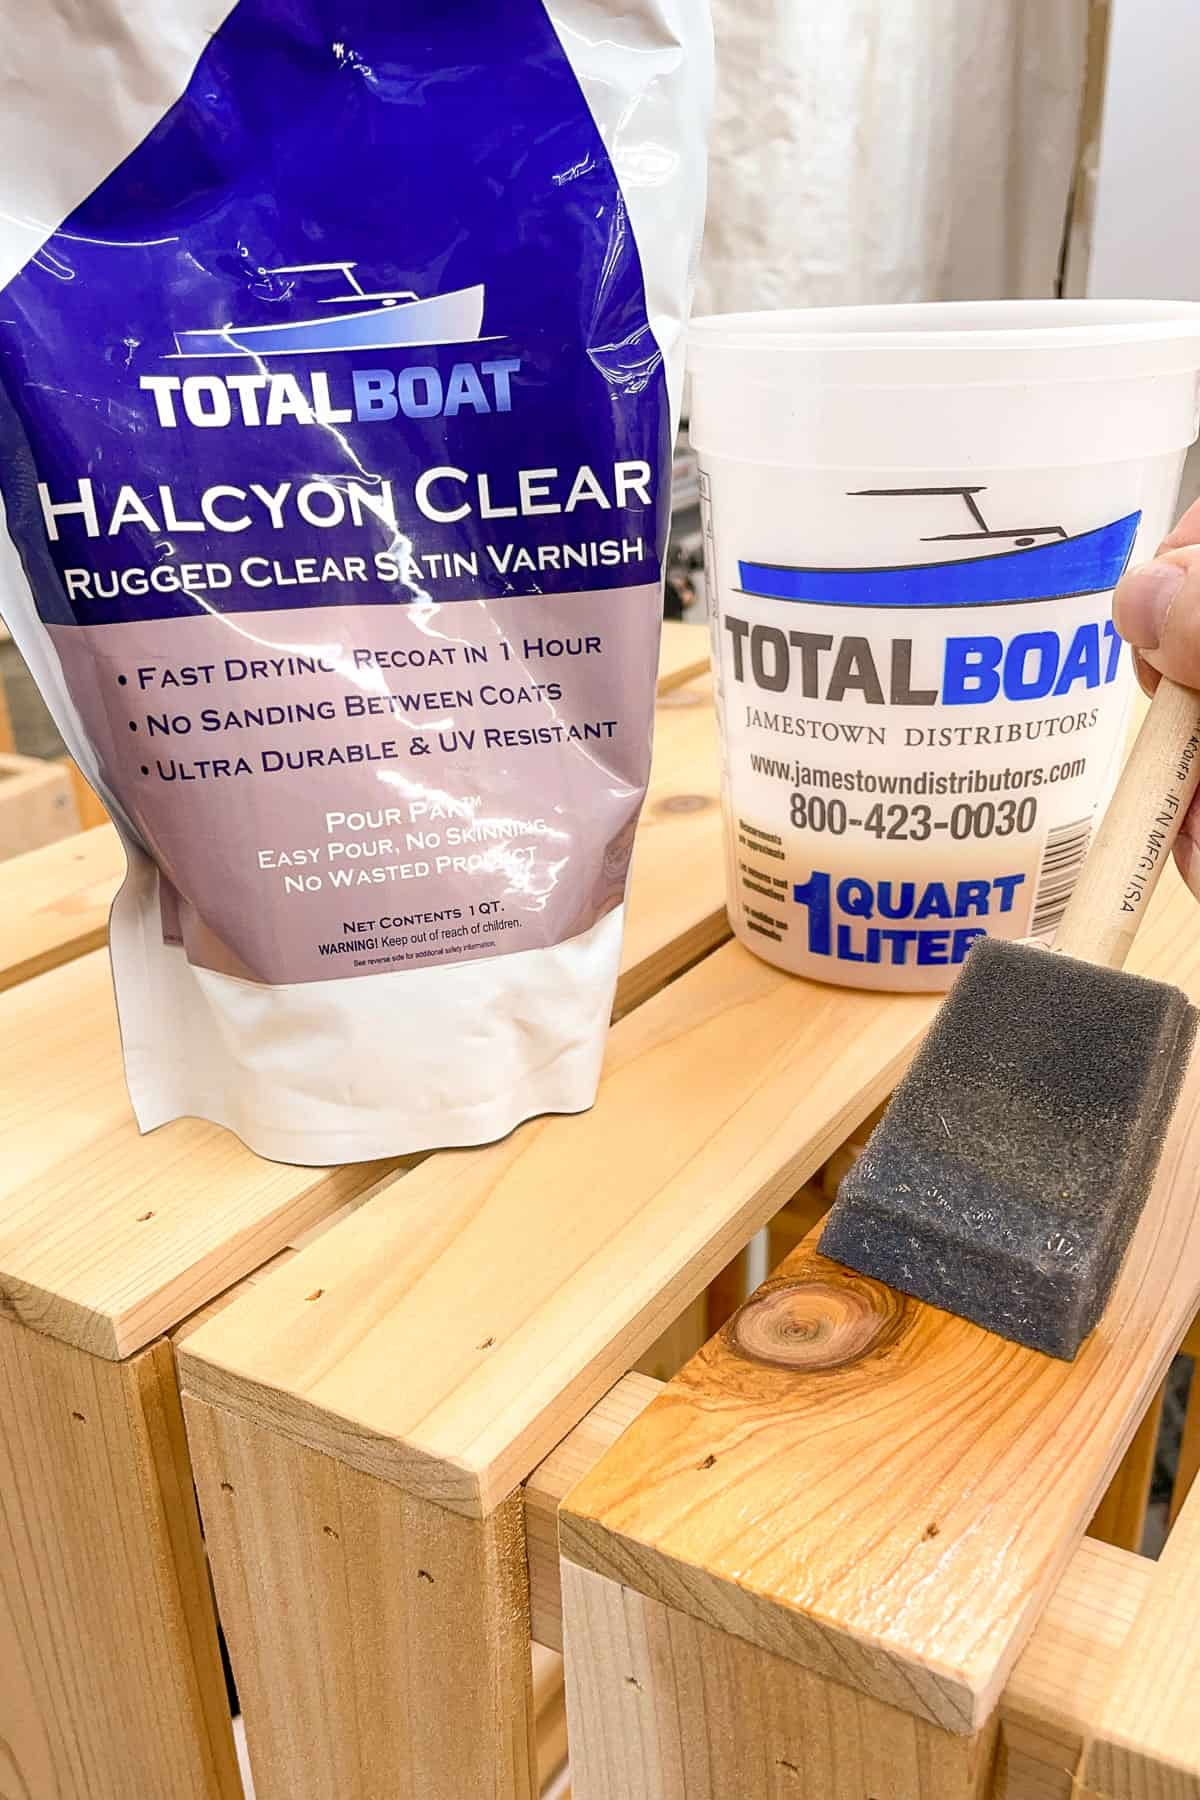 applying Total Boat Halcyon Clear varnish to completed planter box